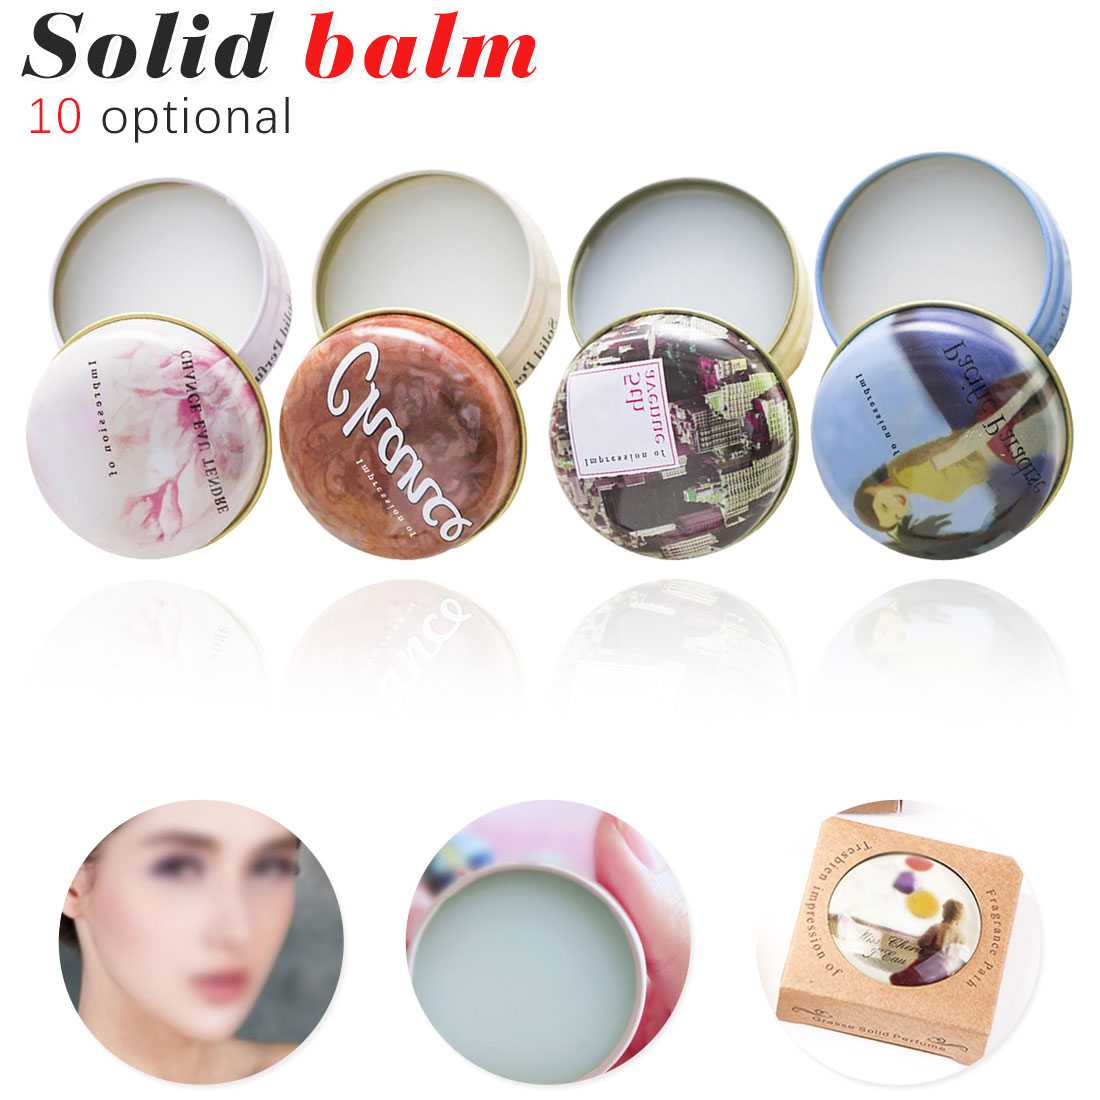 1pcs Magic Solid Perfume For Men Or Women Of Fragrance Alcohol-free Solid Perfumes And Fragrances Deodorant Fragrance